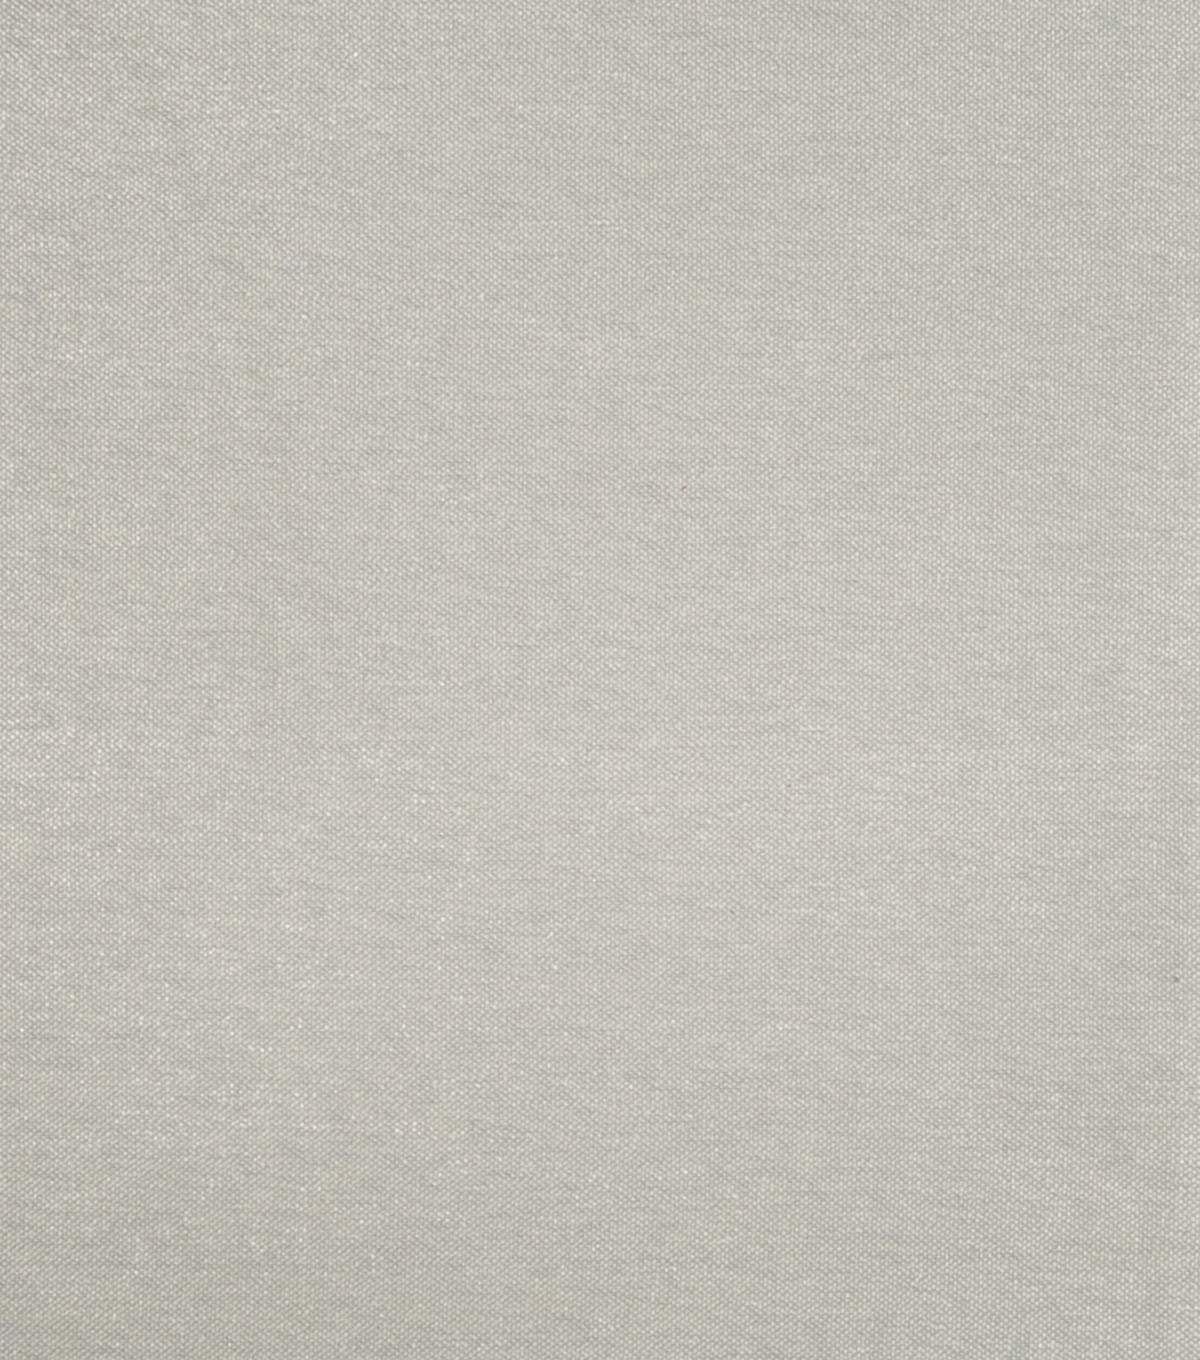 Home Decor 8\u0022x8\u0022 Fabric Swatch-Jaclyn Smith Cobblestone Boucle Spray